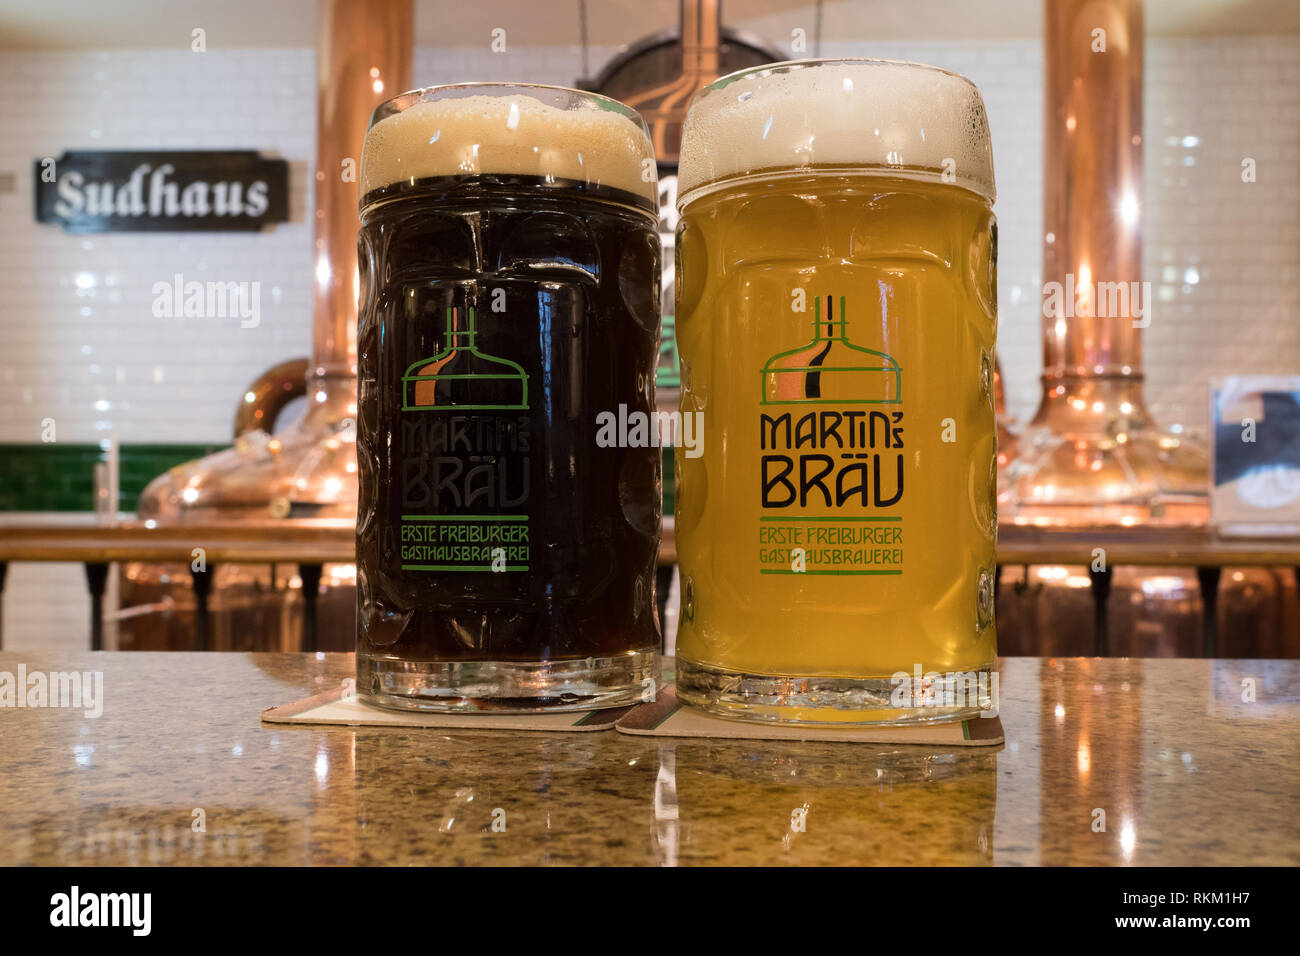 Martin's Brau craft brewery, Freiburg im Breisgau, Baden Wurttemberg, Germany - glasses of pils and dark beer - Stock Image